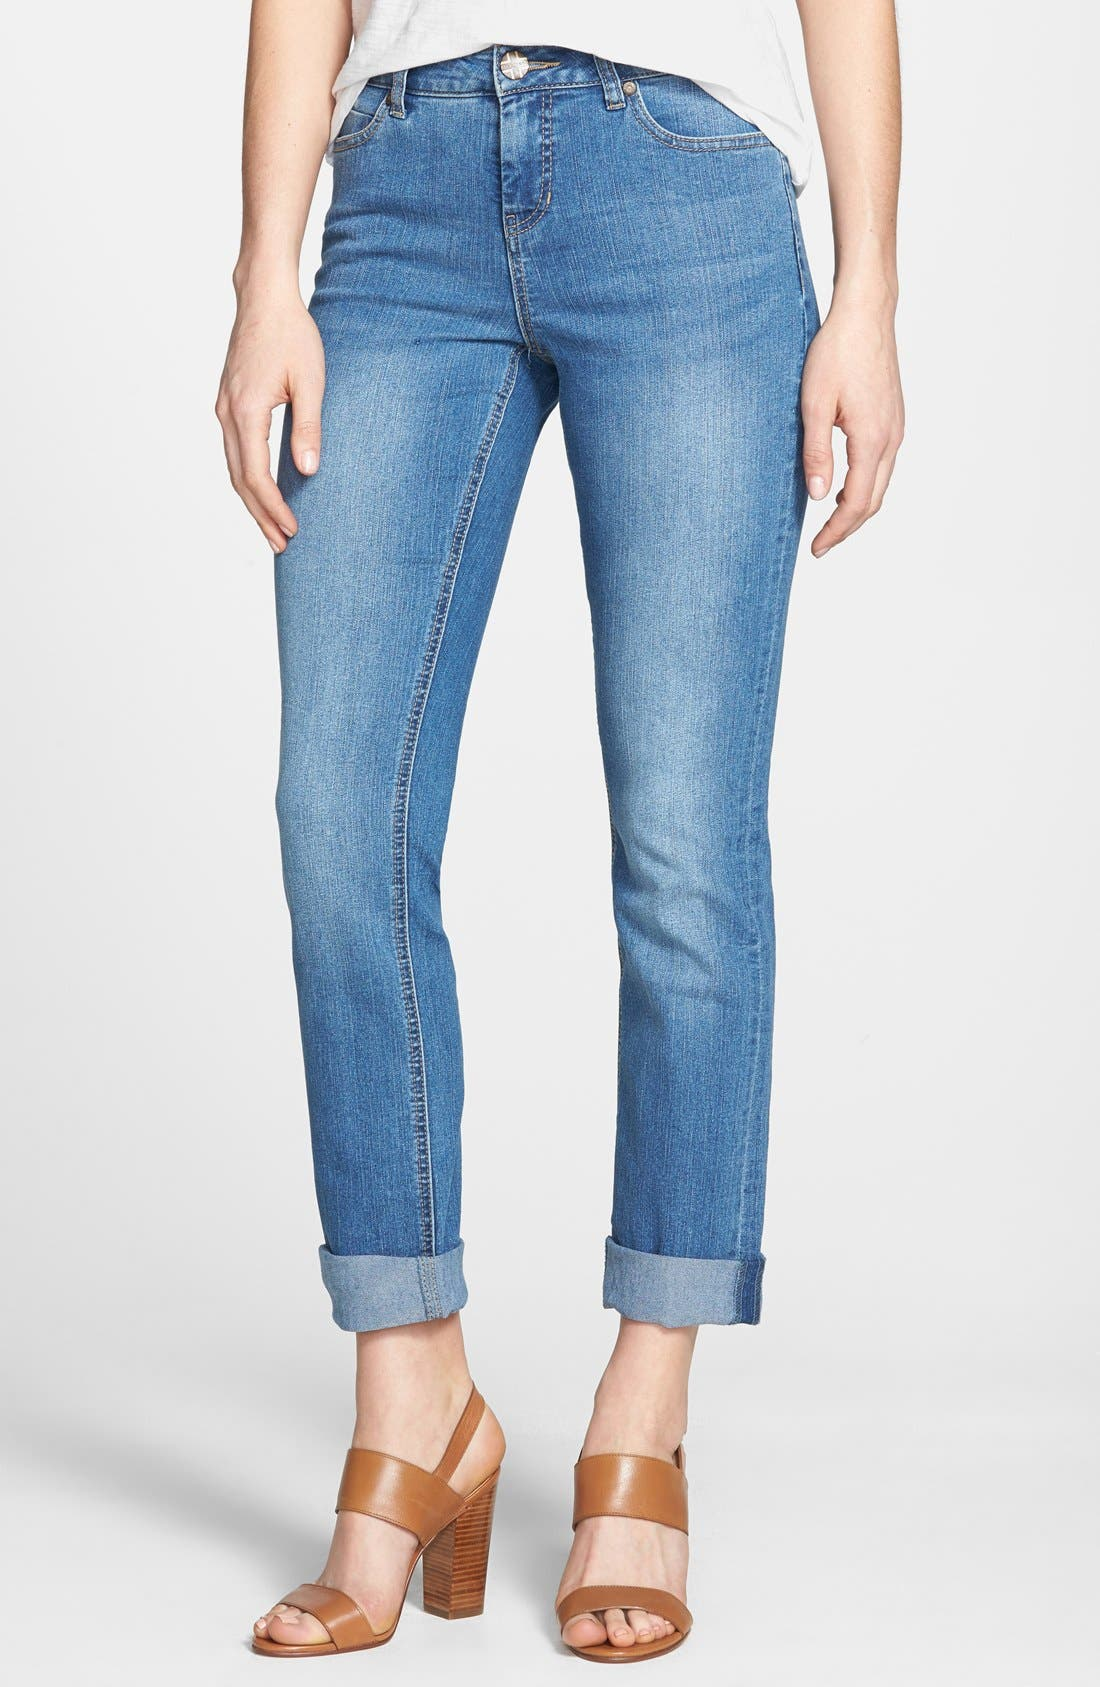 Alternate Image 1 Selected - Liverpool Jeans Company 'Sadie' Straight Leg Stretch Jeans